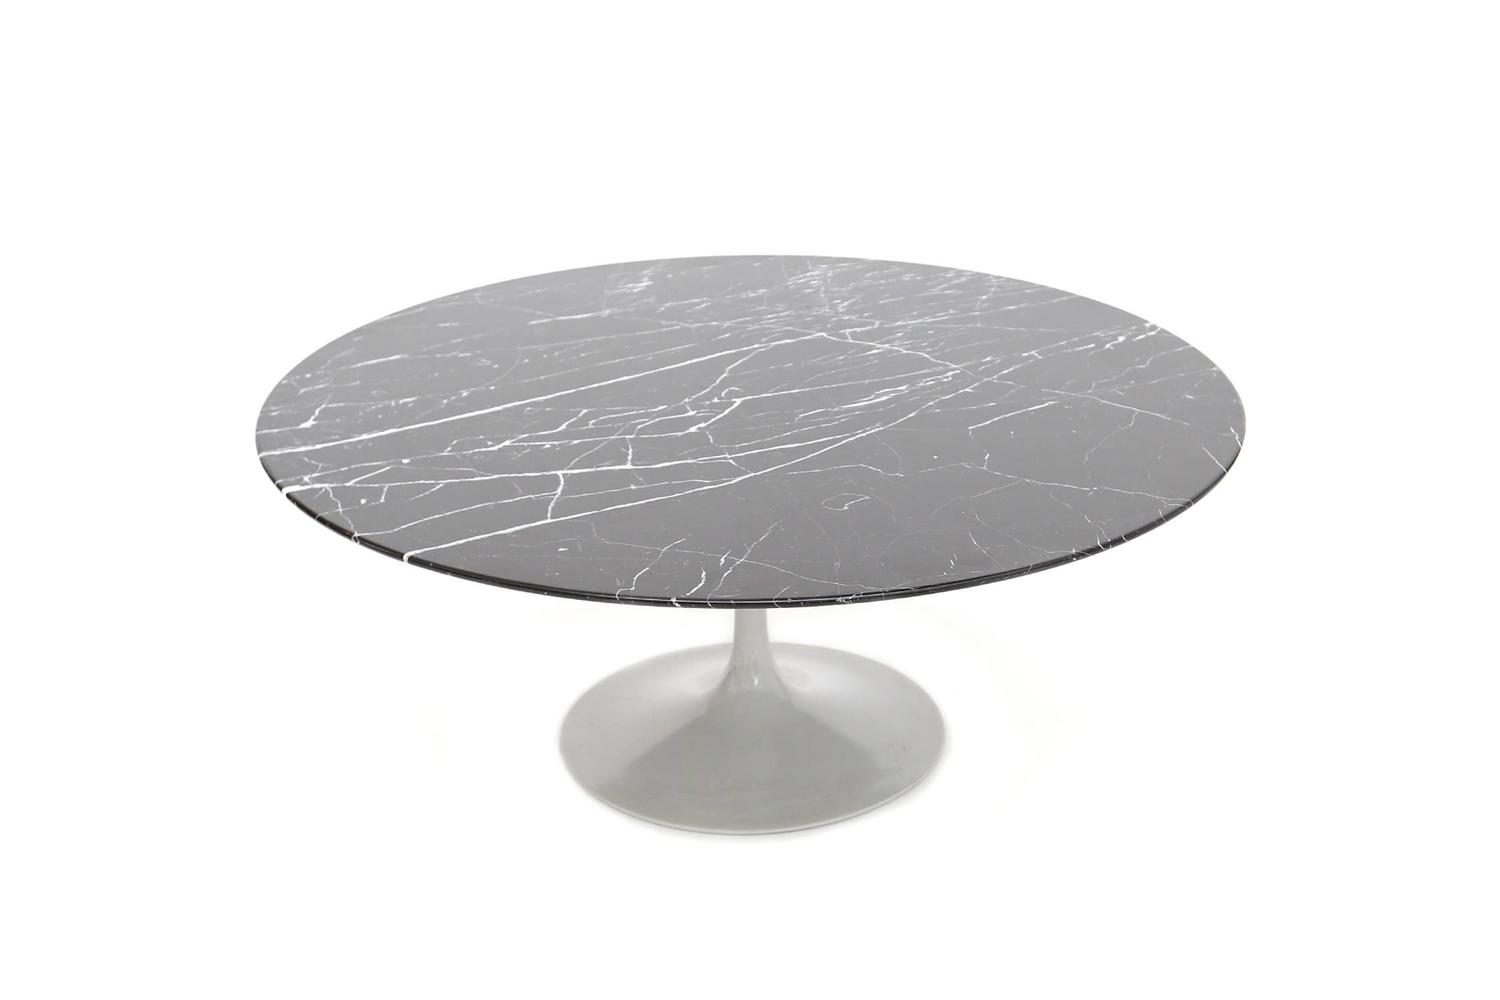 Saarinen Coffee Table Knoll At 1stdibs